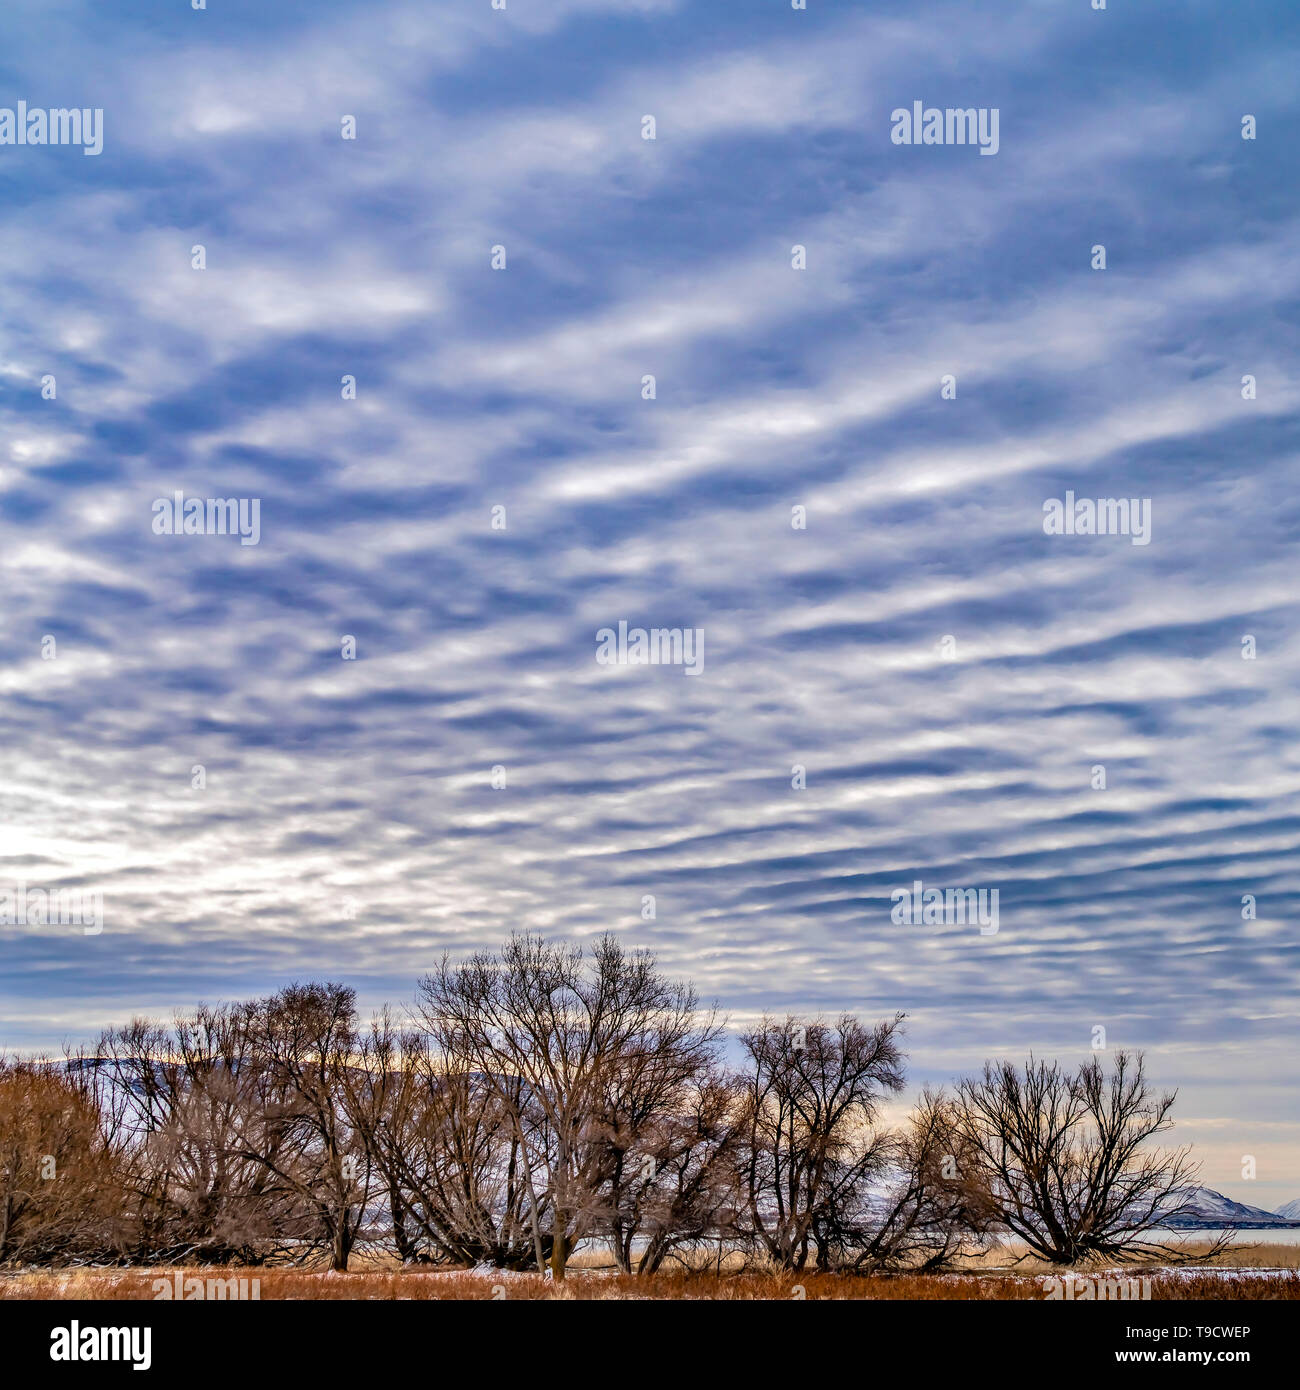 Clear Square Defocused view of a dramatic blue sky filled with white puffy clouds - Stock Image